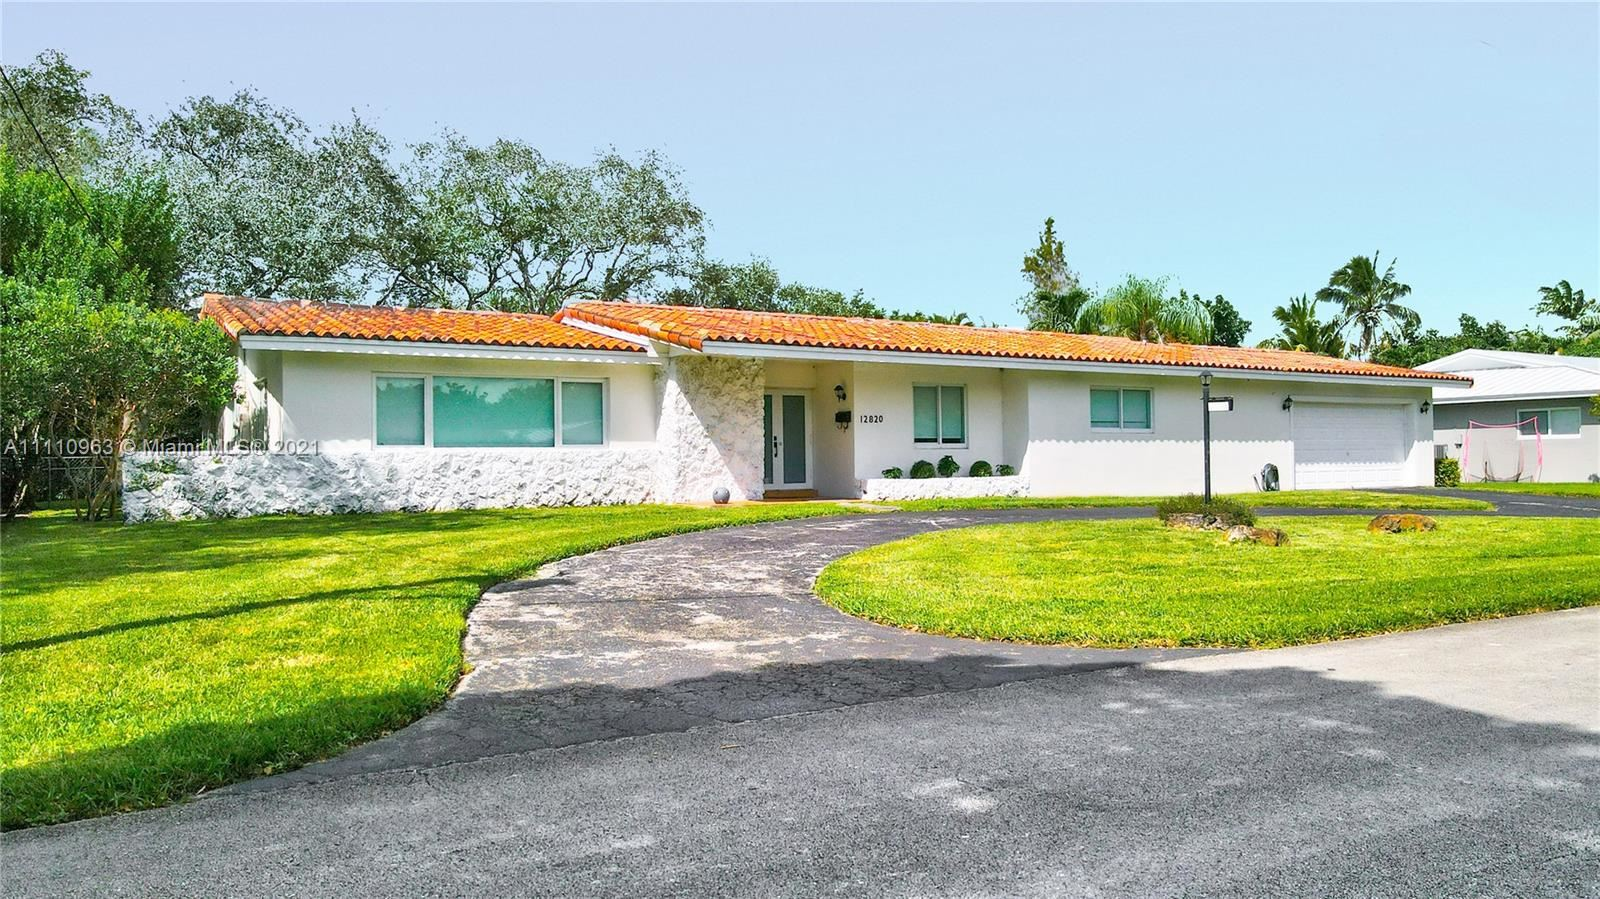 12820 SW 70th Ave, Pinecrest, FL 33156 - #: A11110963